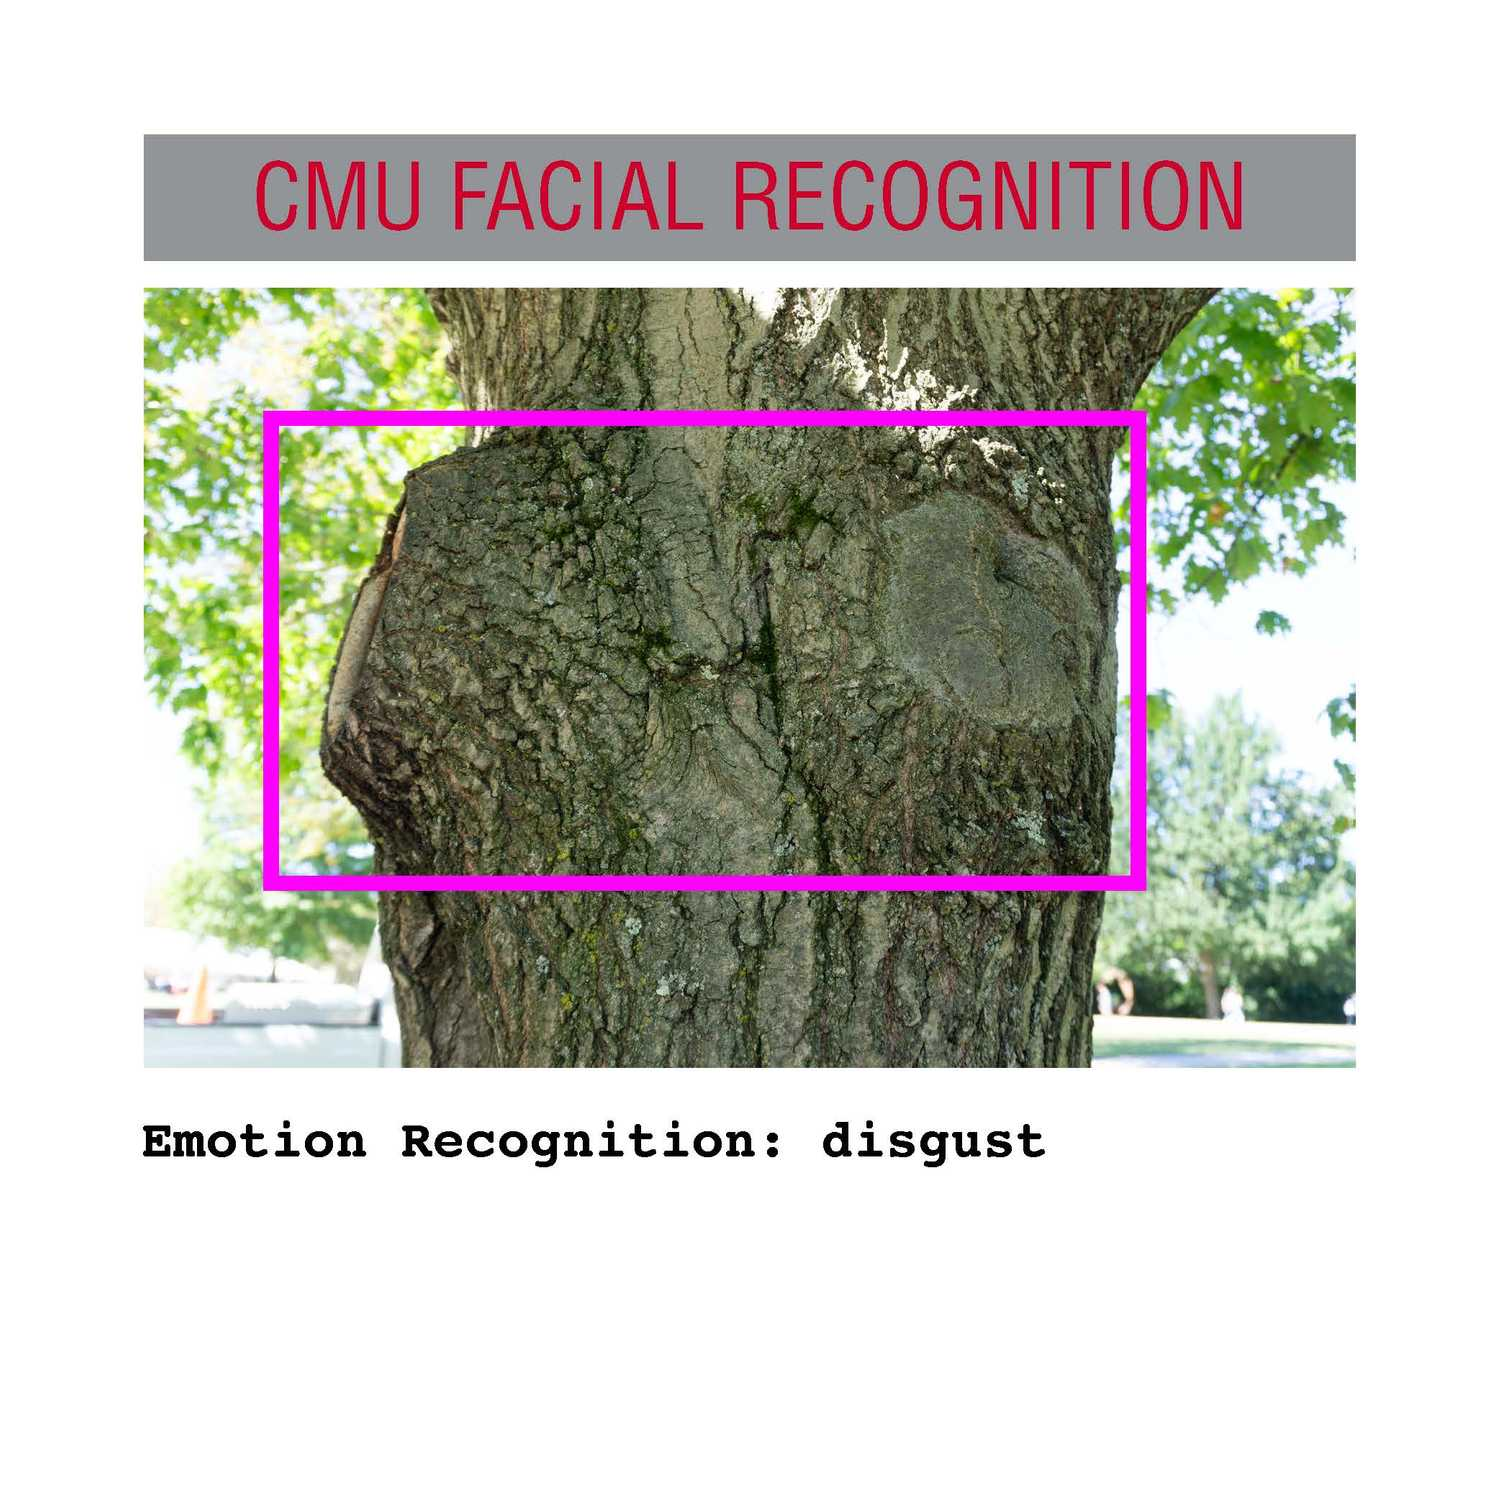 facial recognition Page 33